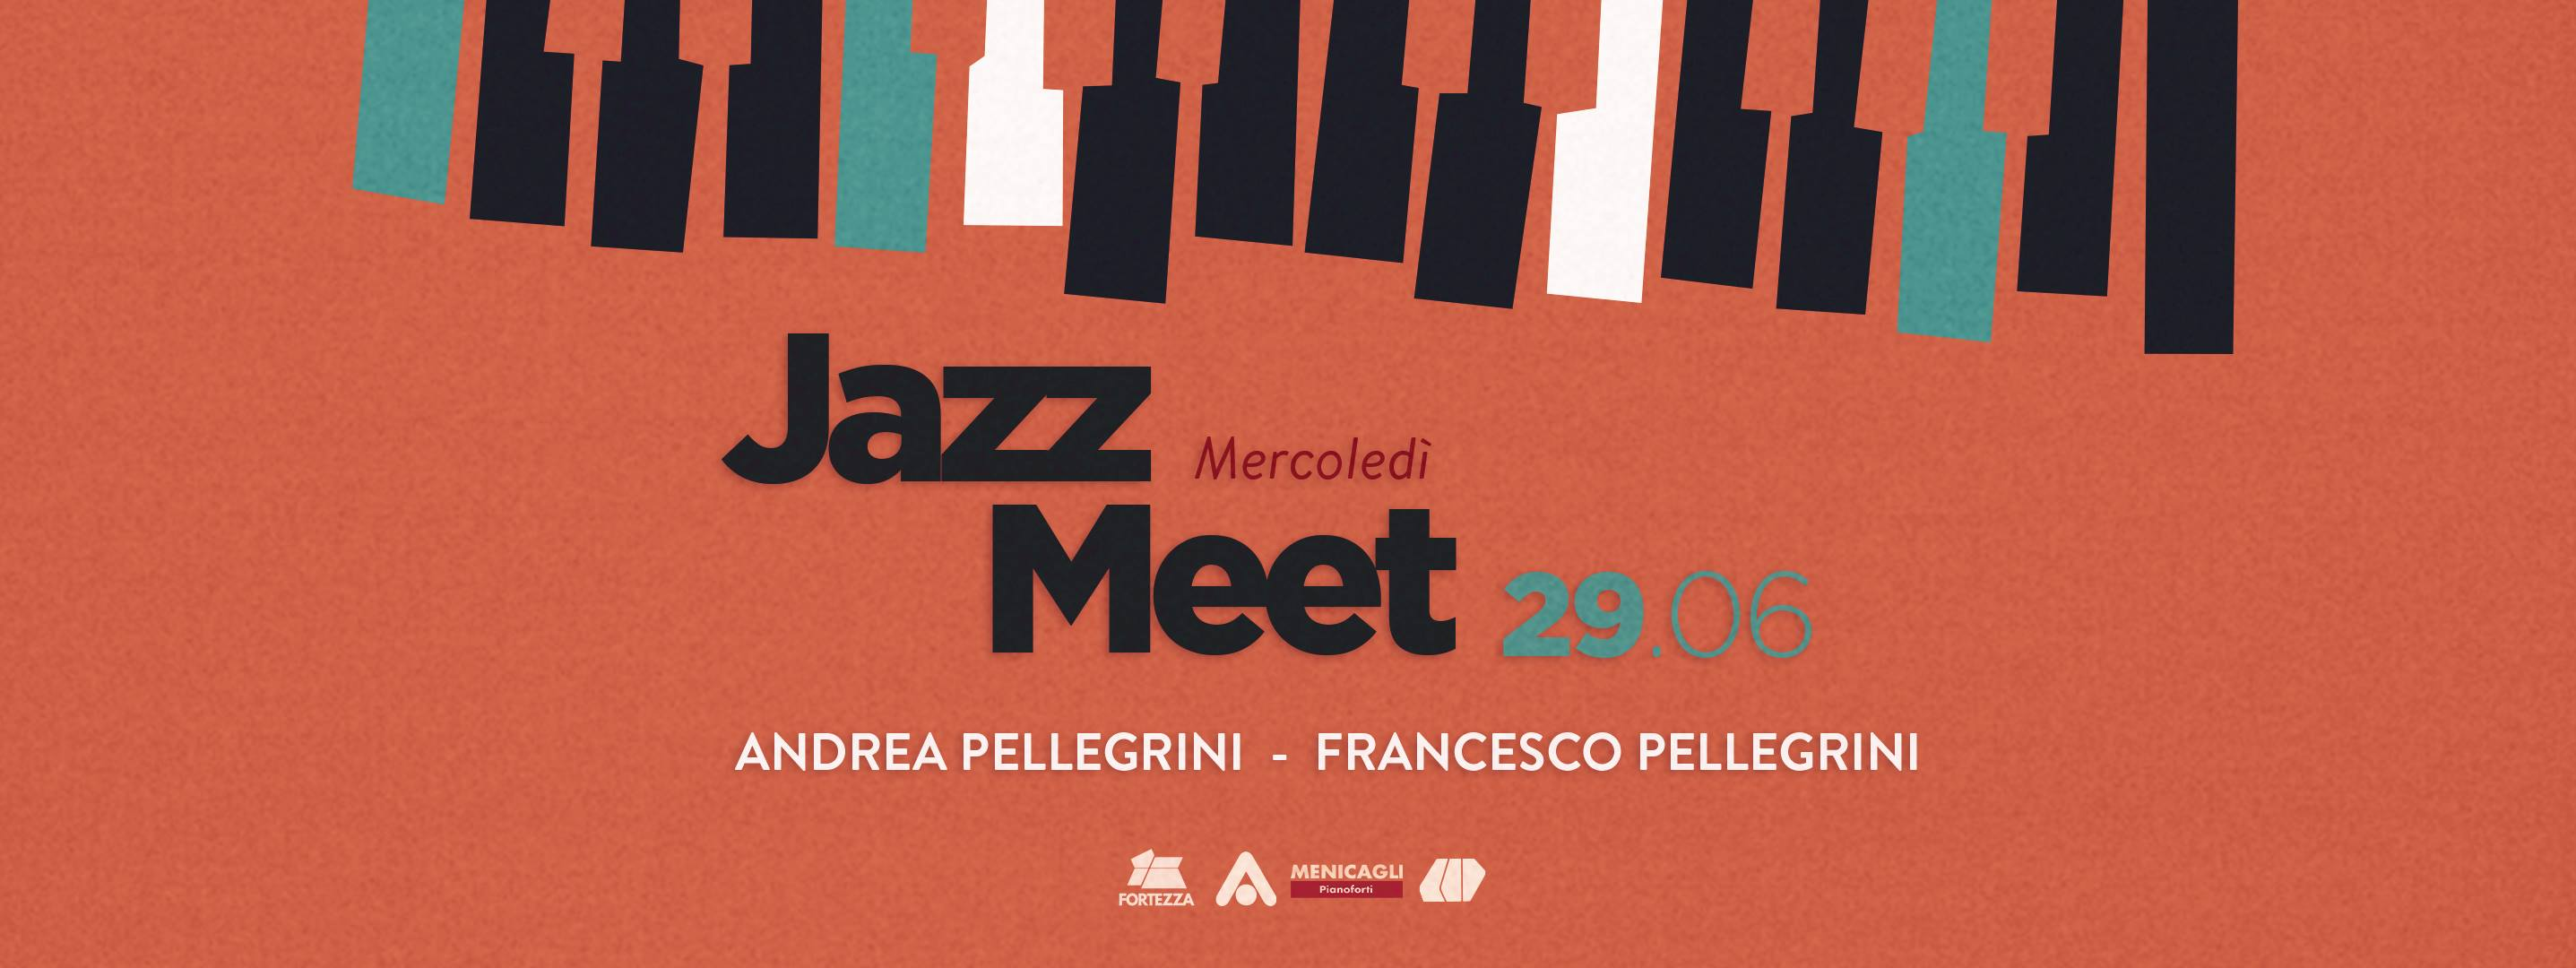 Fortezza Jazz Meet CliccaLivorno